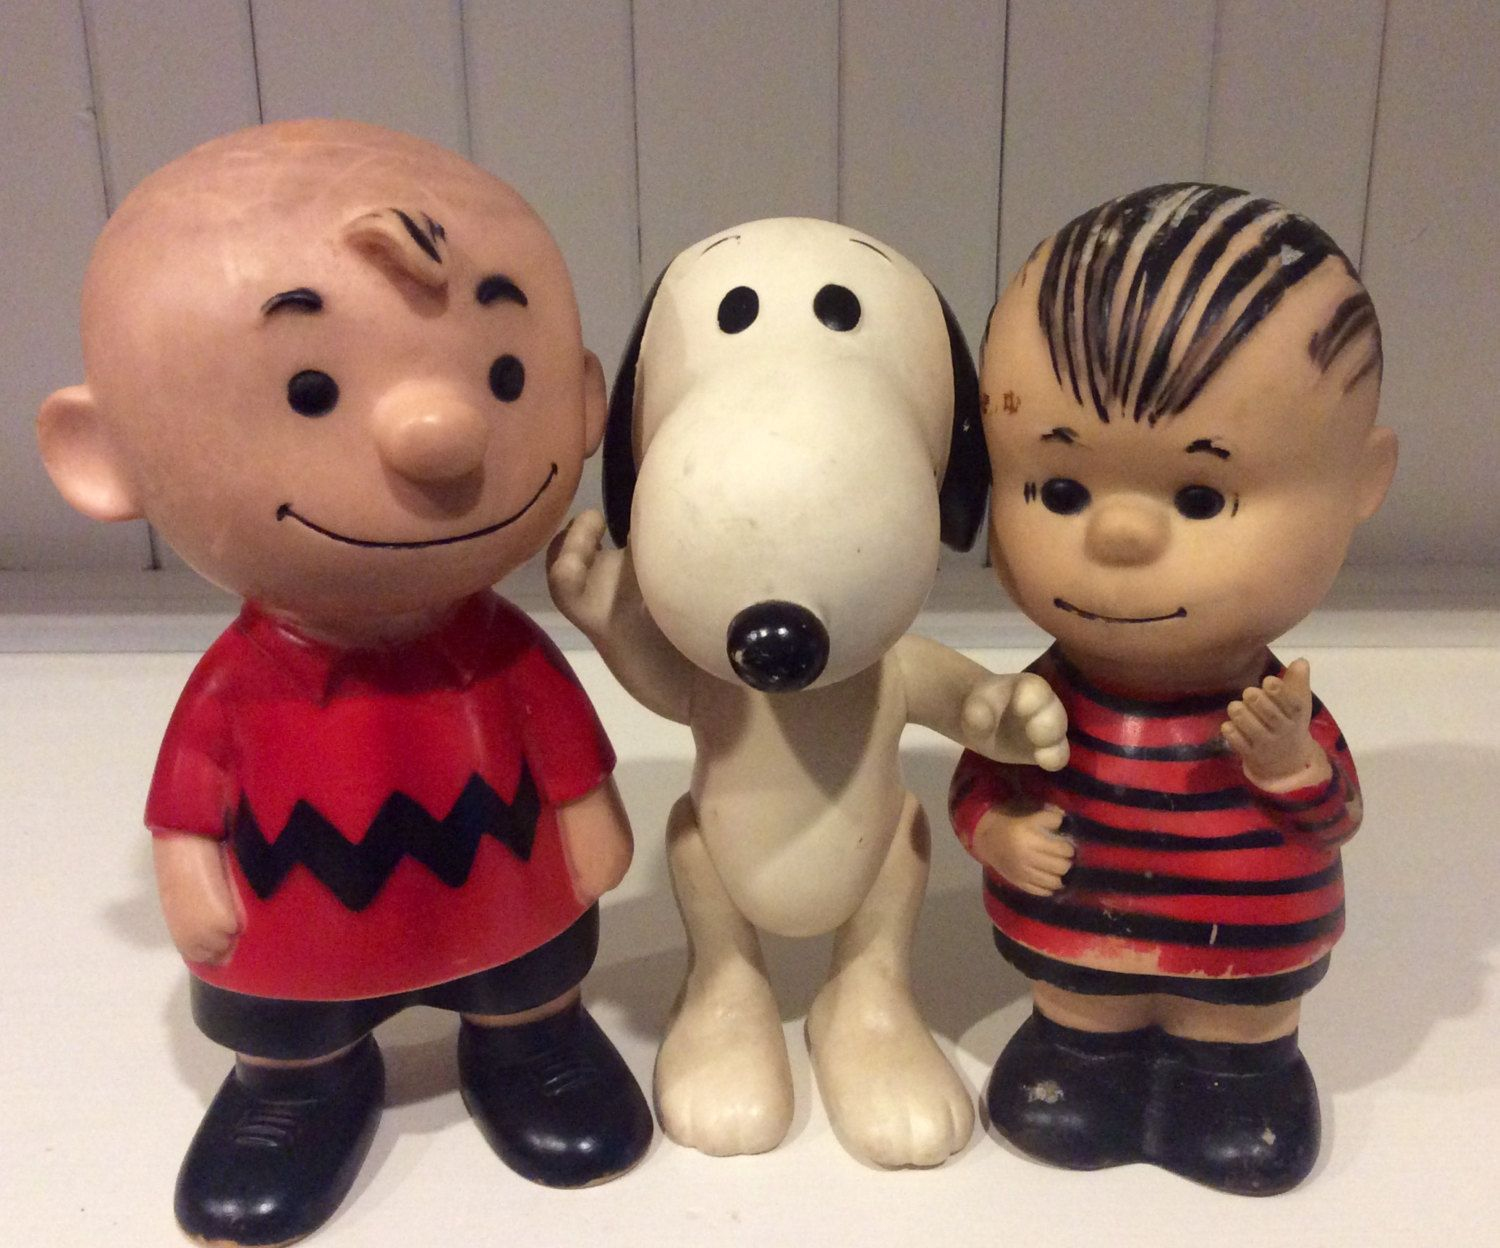 Vintage Hungerford Vinyl Charlie Brown Snoopy Linus Dolls By United Features Syndicate Collectible Peanuts Characters Vinyl Snoopy Charlie Brown And Snoopy Snoopy Stuffed Animal Snoopy Collectibles